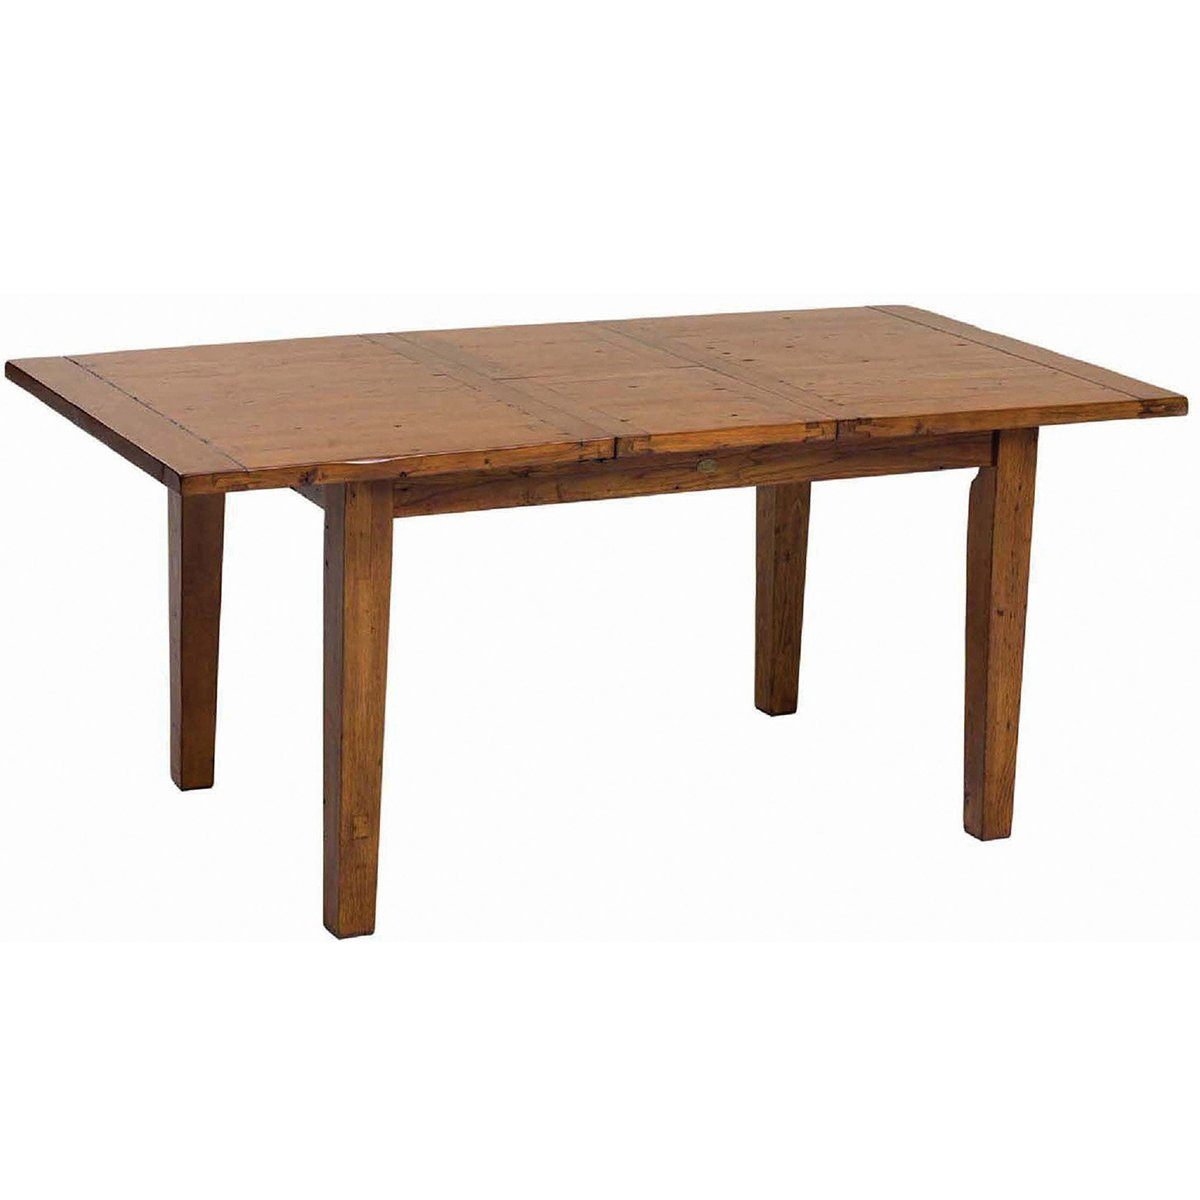 "Small Extension Dining Table (47""/62"") - African Dusk - Showhome Furniture"